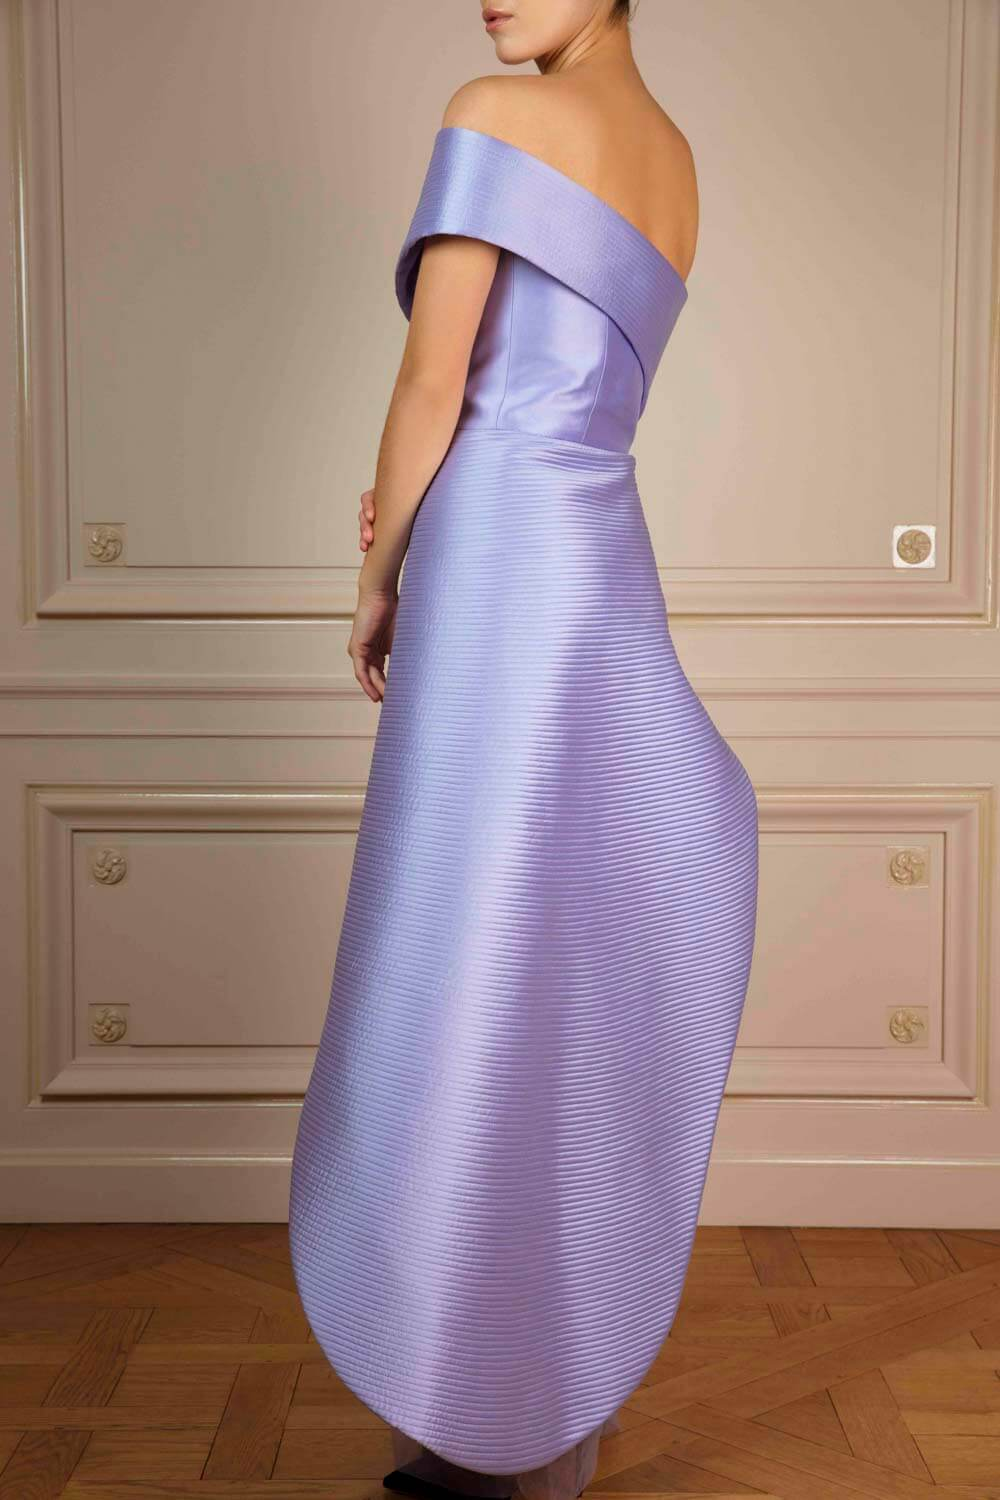 Asymmetric wrap dress in lilac quilted satin with tulle skirt overlay